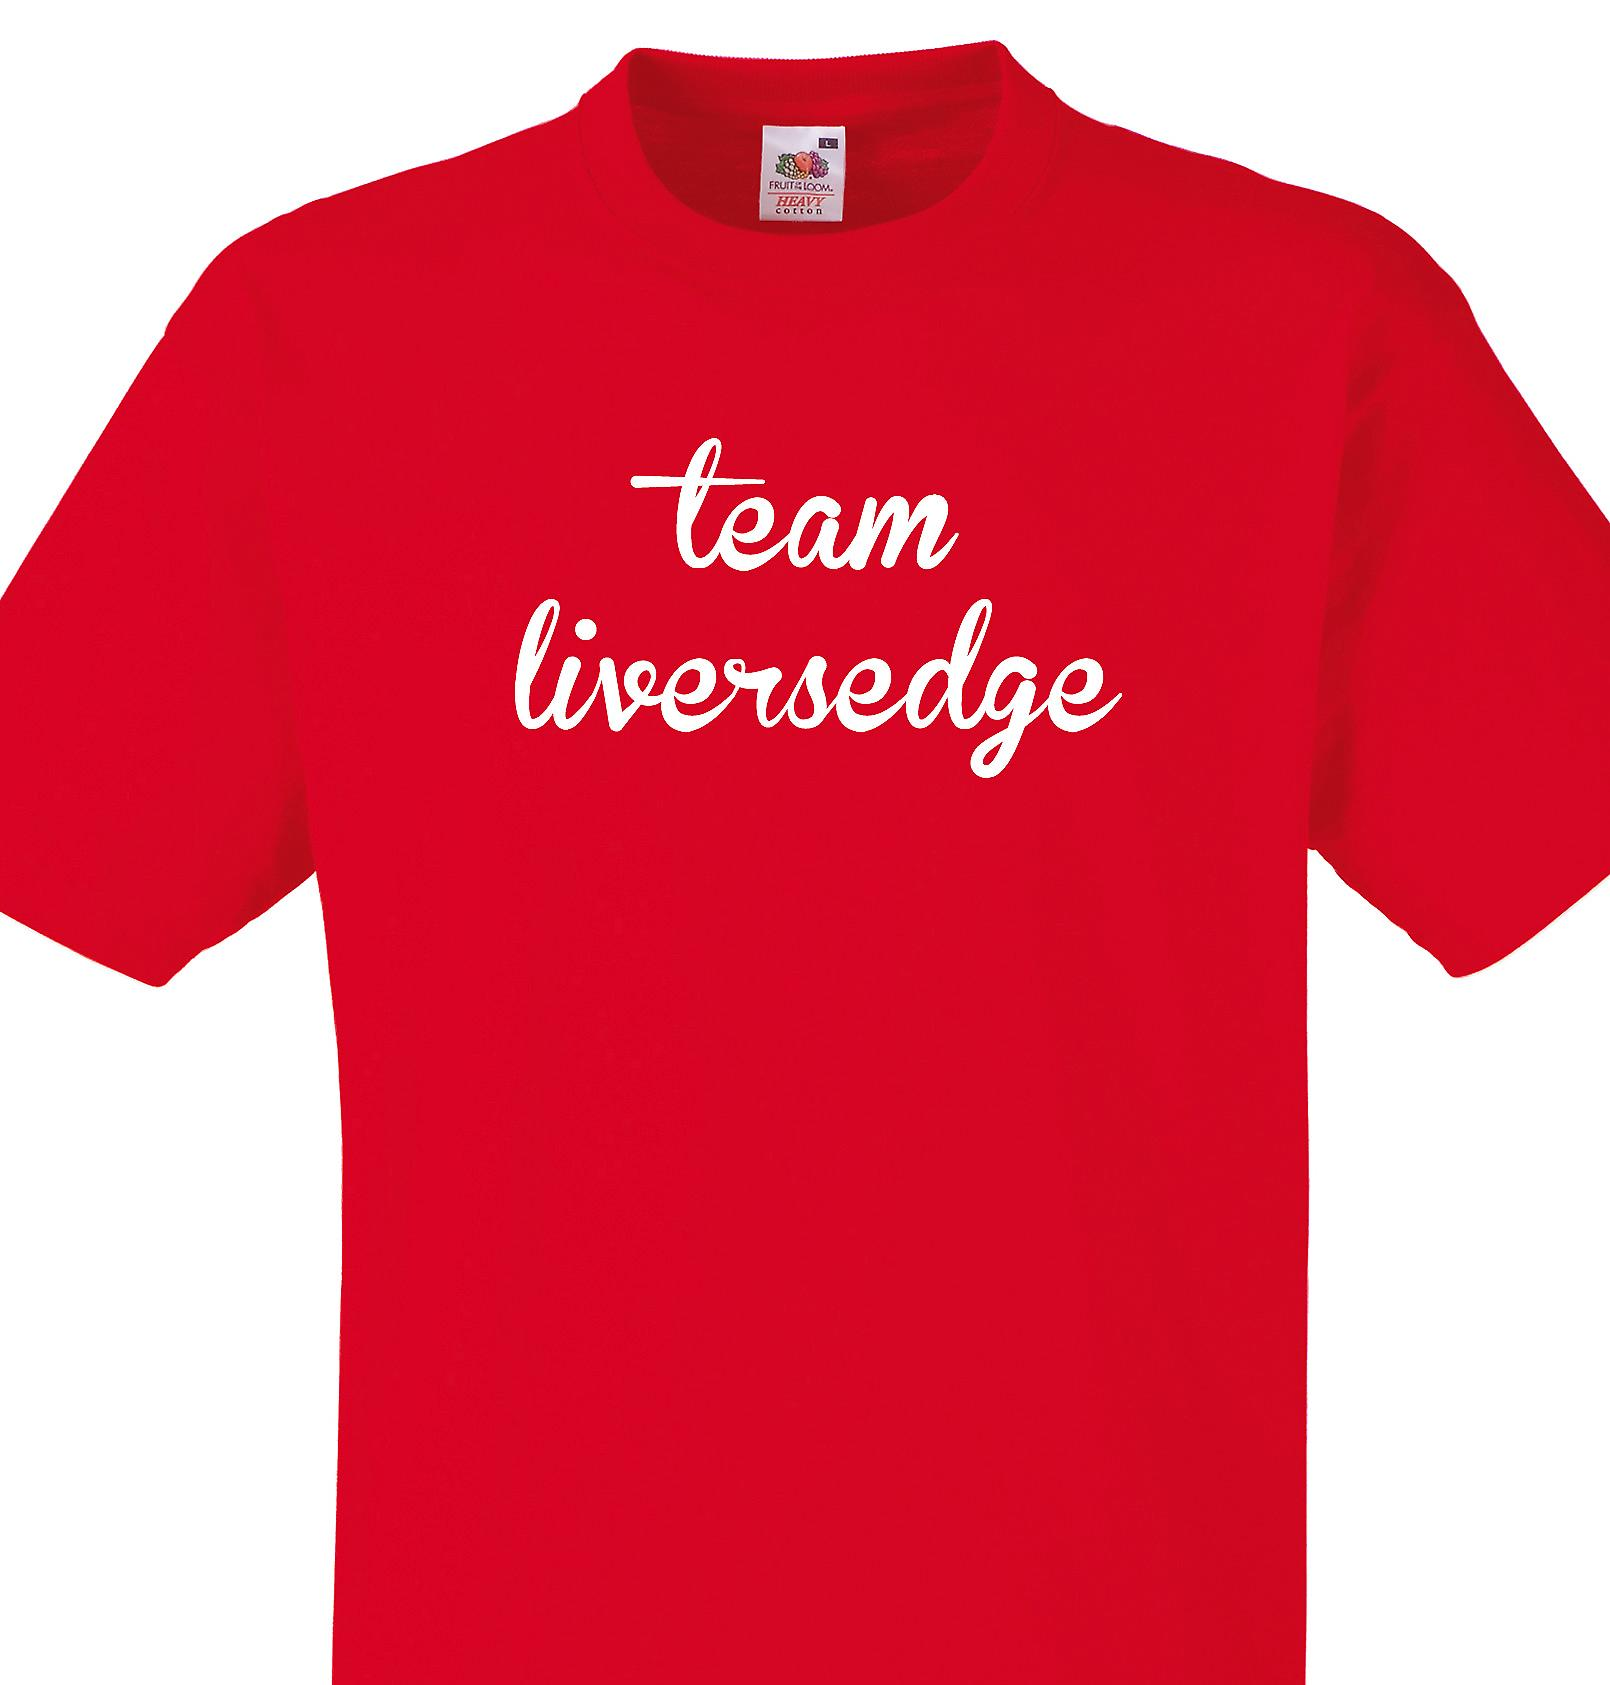 Team Liversedge Red T shirt